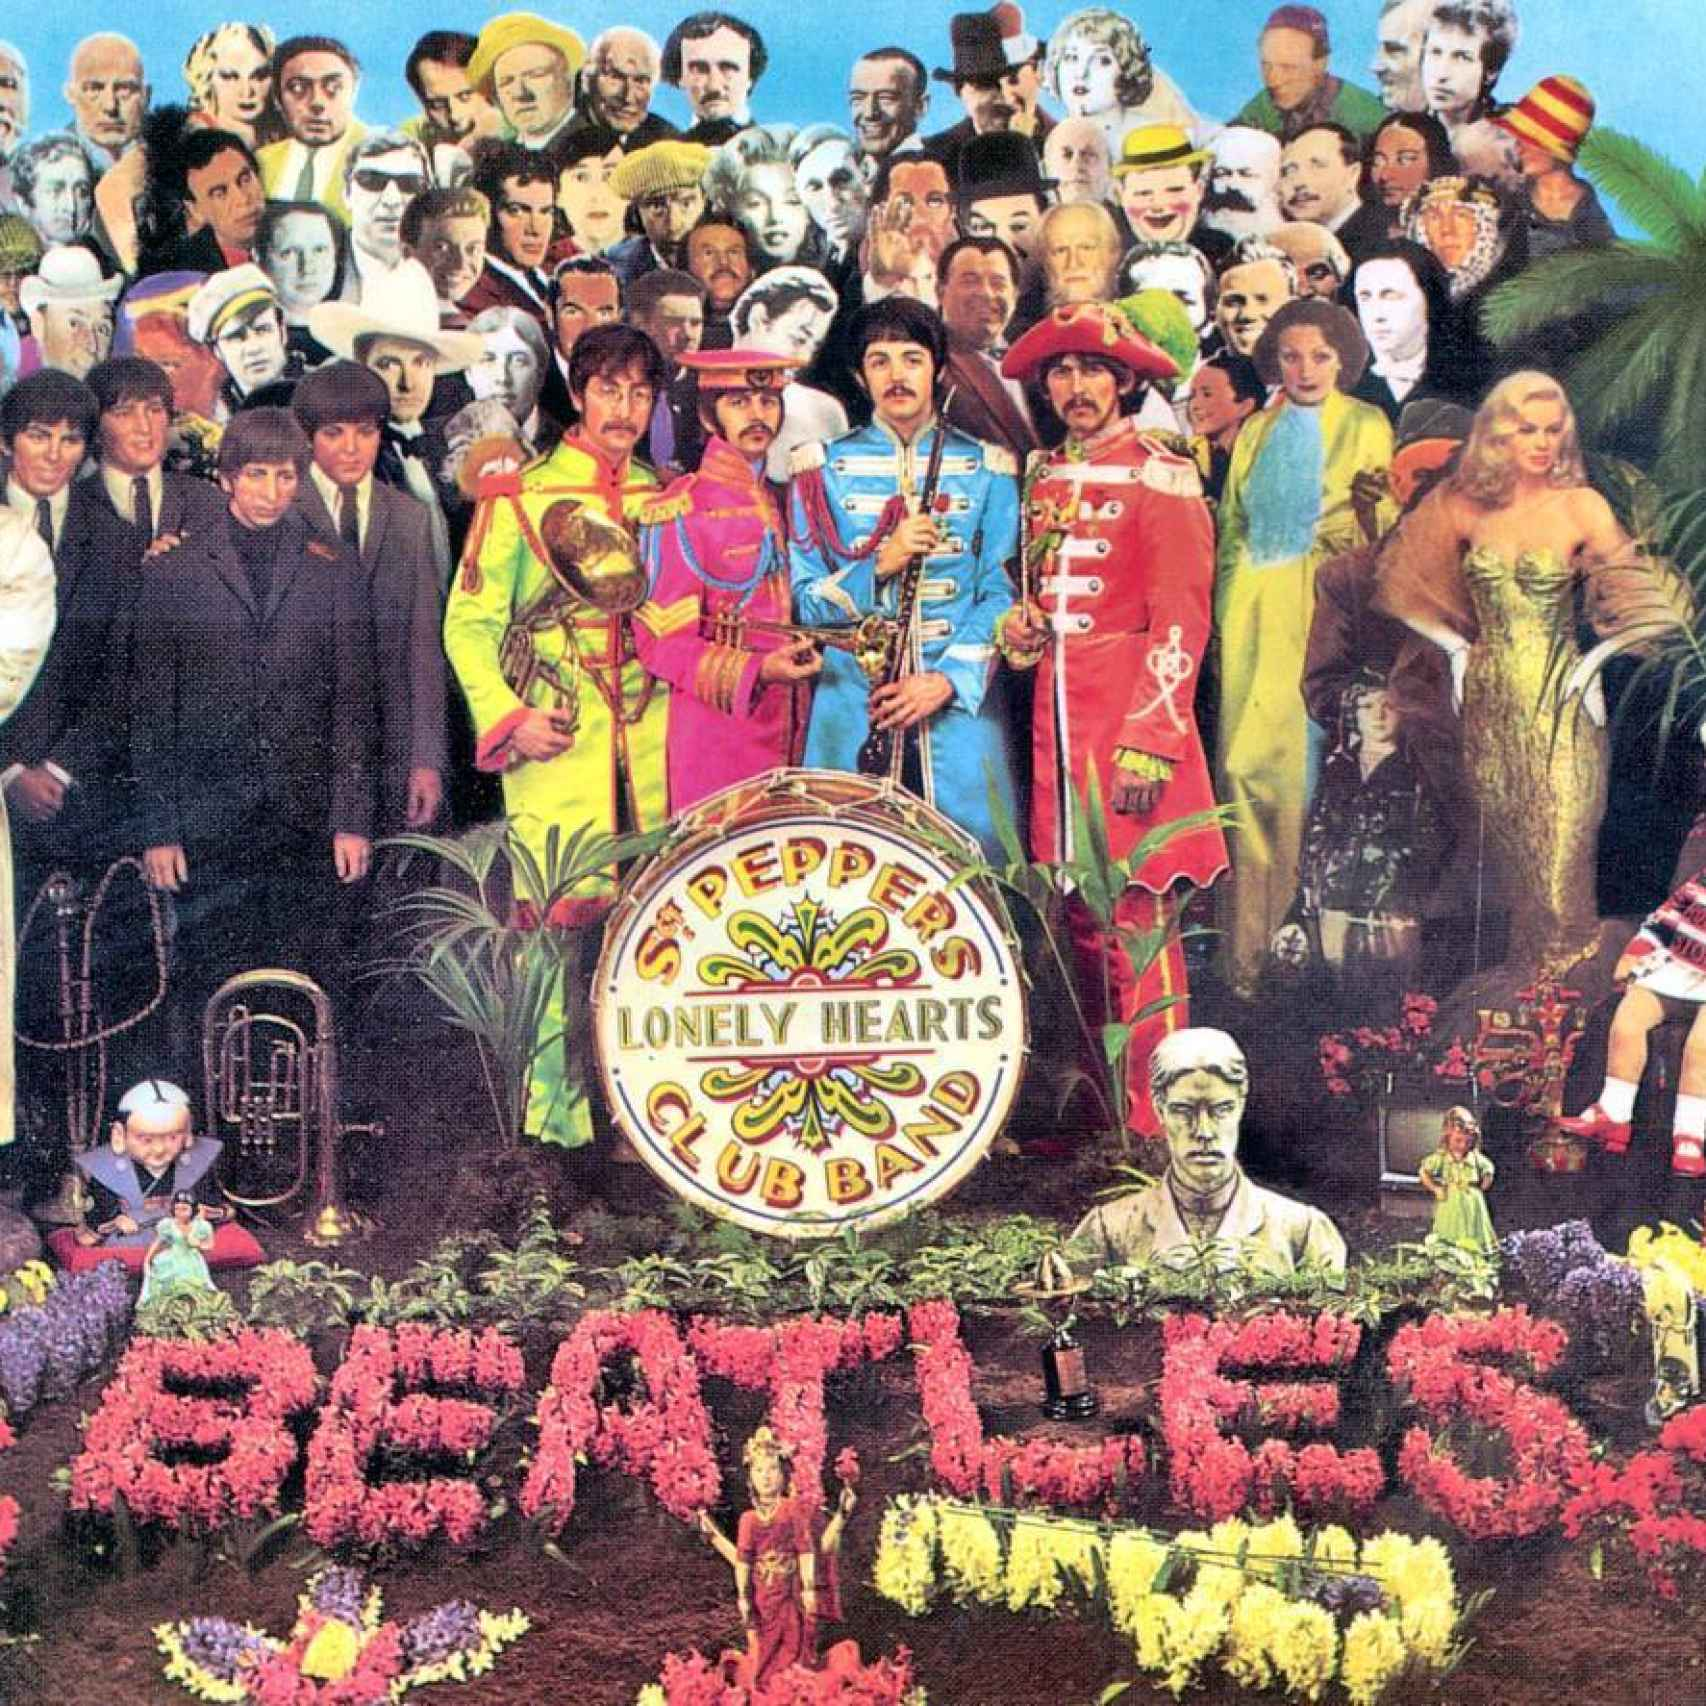 Portada del disco Sgt. Peppers